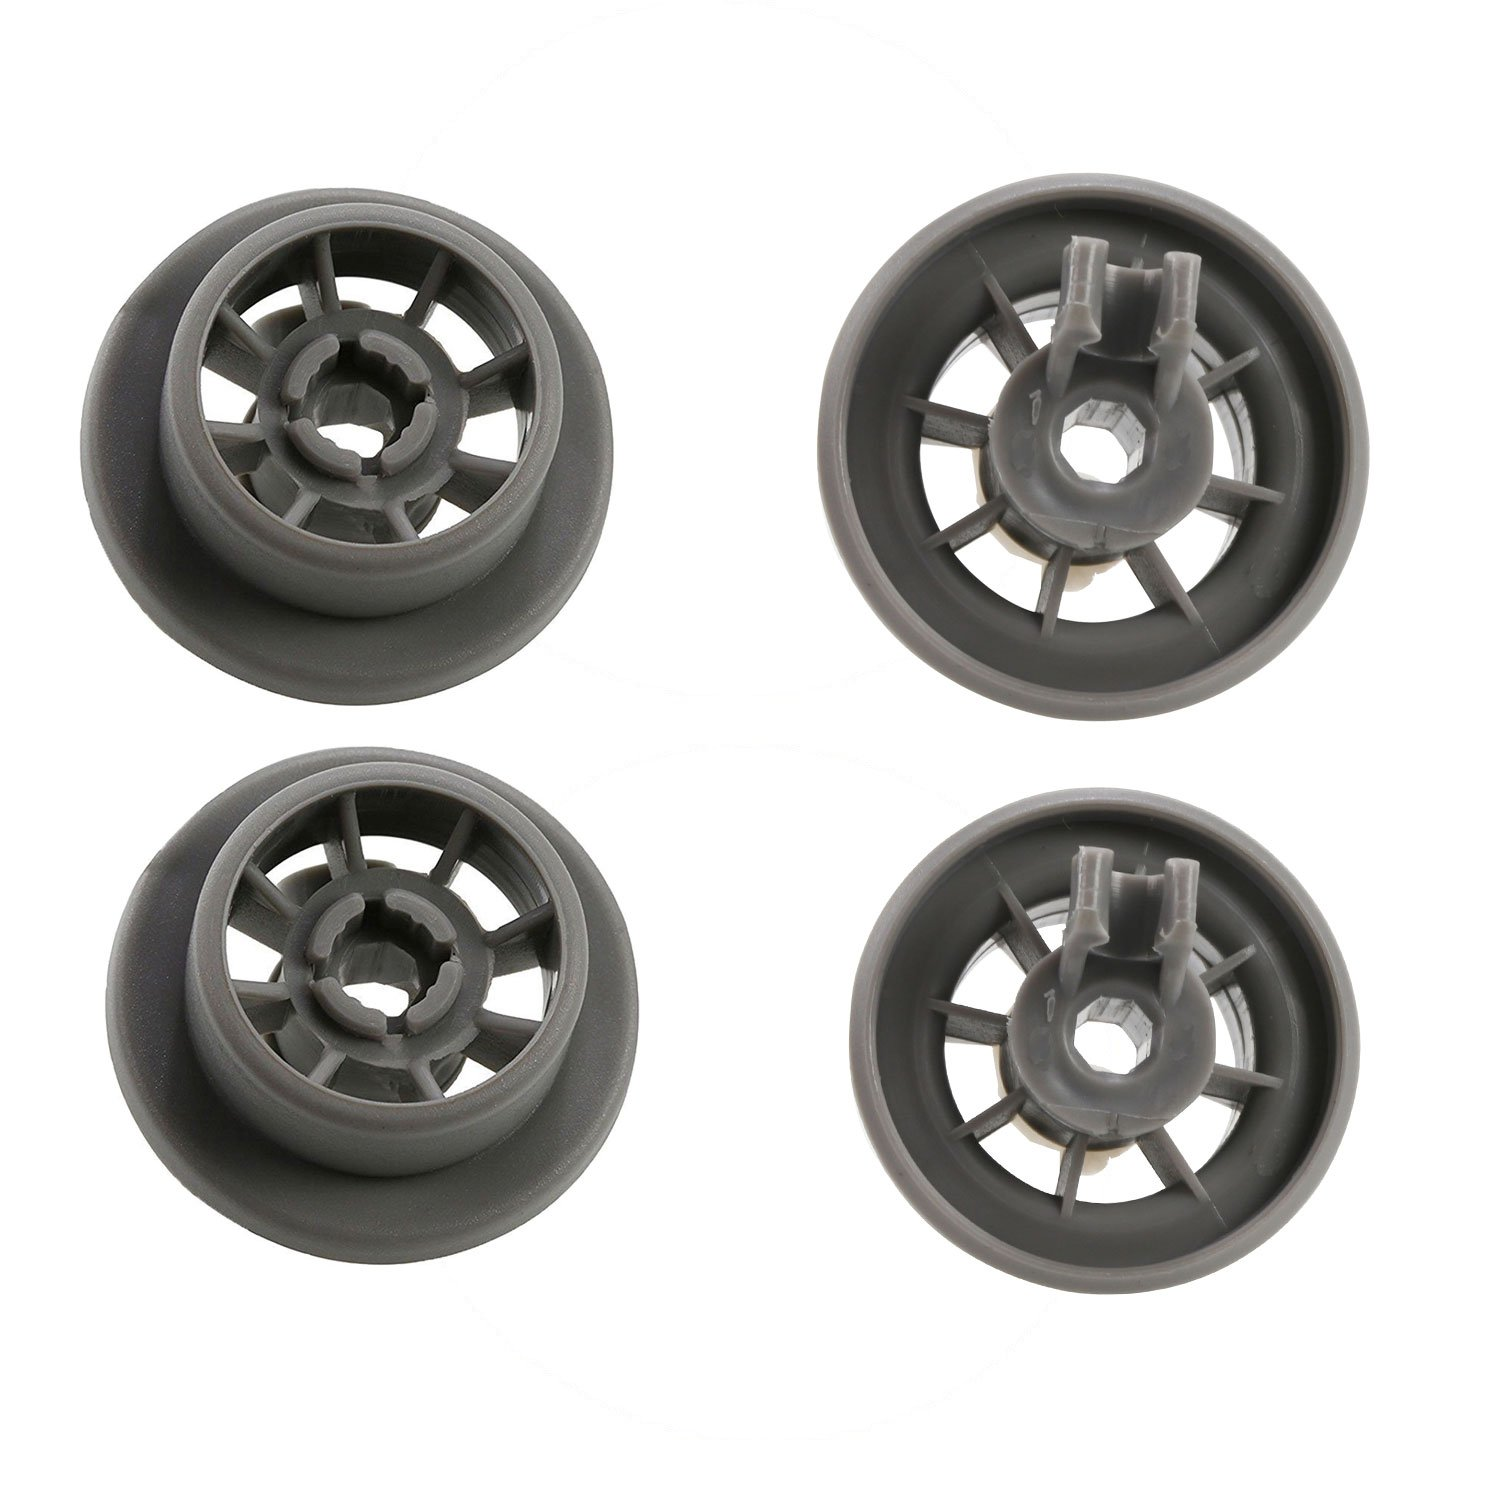 4 X BOSCH//NEFF//SIEMENS GENUINE DISHWASHER LOWER BASKET WHEELS 00165314 165314